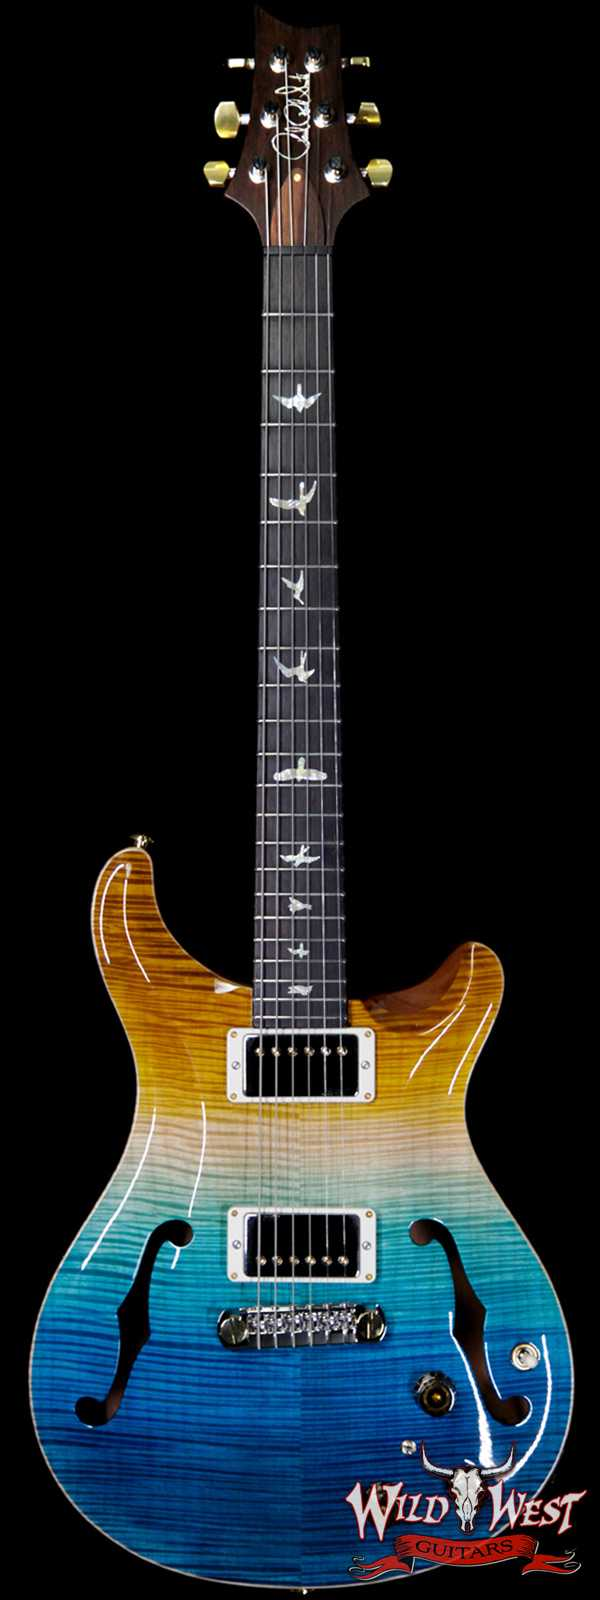 PRS Wild West Guitars 20th Anniversary Limited Run # 2 of 40 Wood Library Artist Package Hollowbody I Piezo HB1 Beach Cross Fade(Private Stock Color)